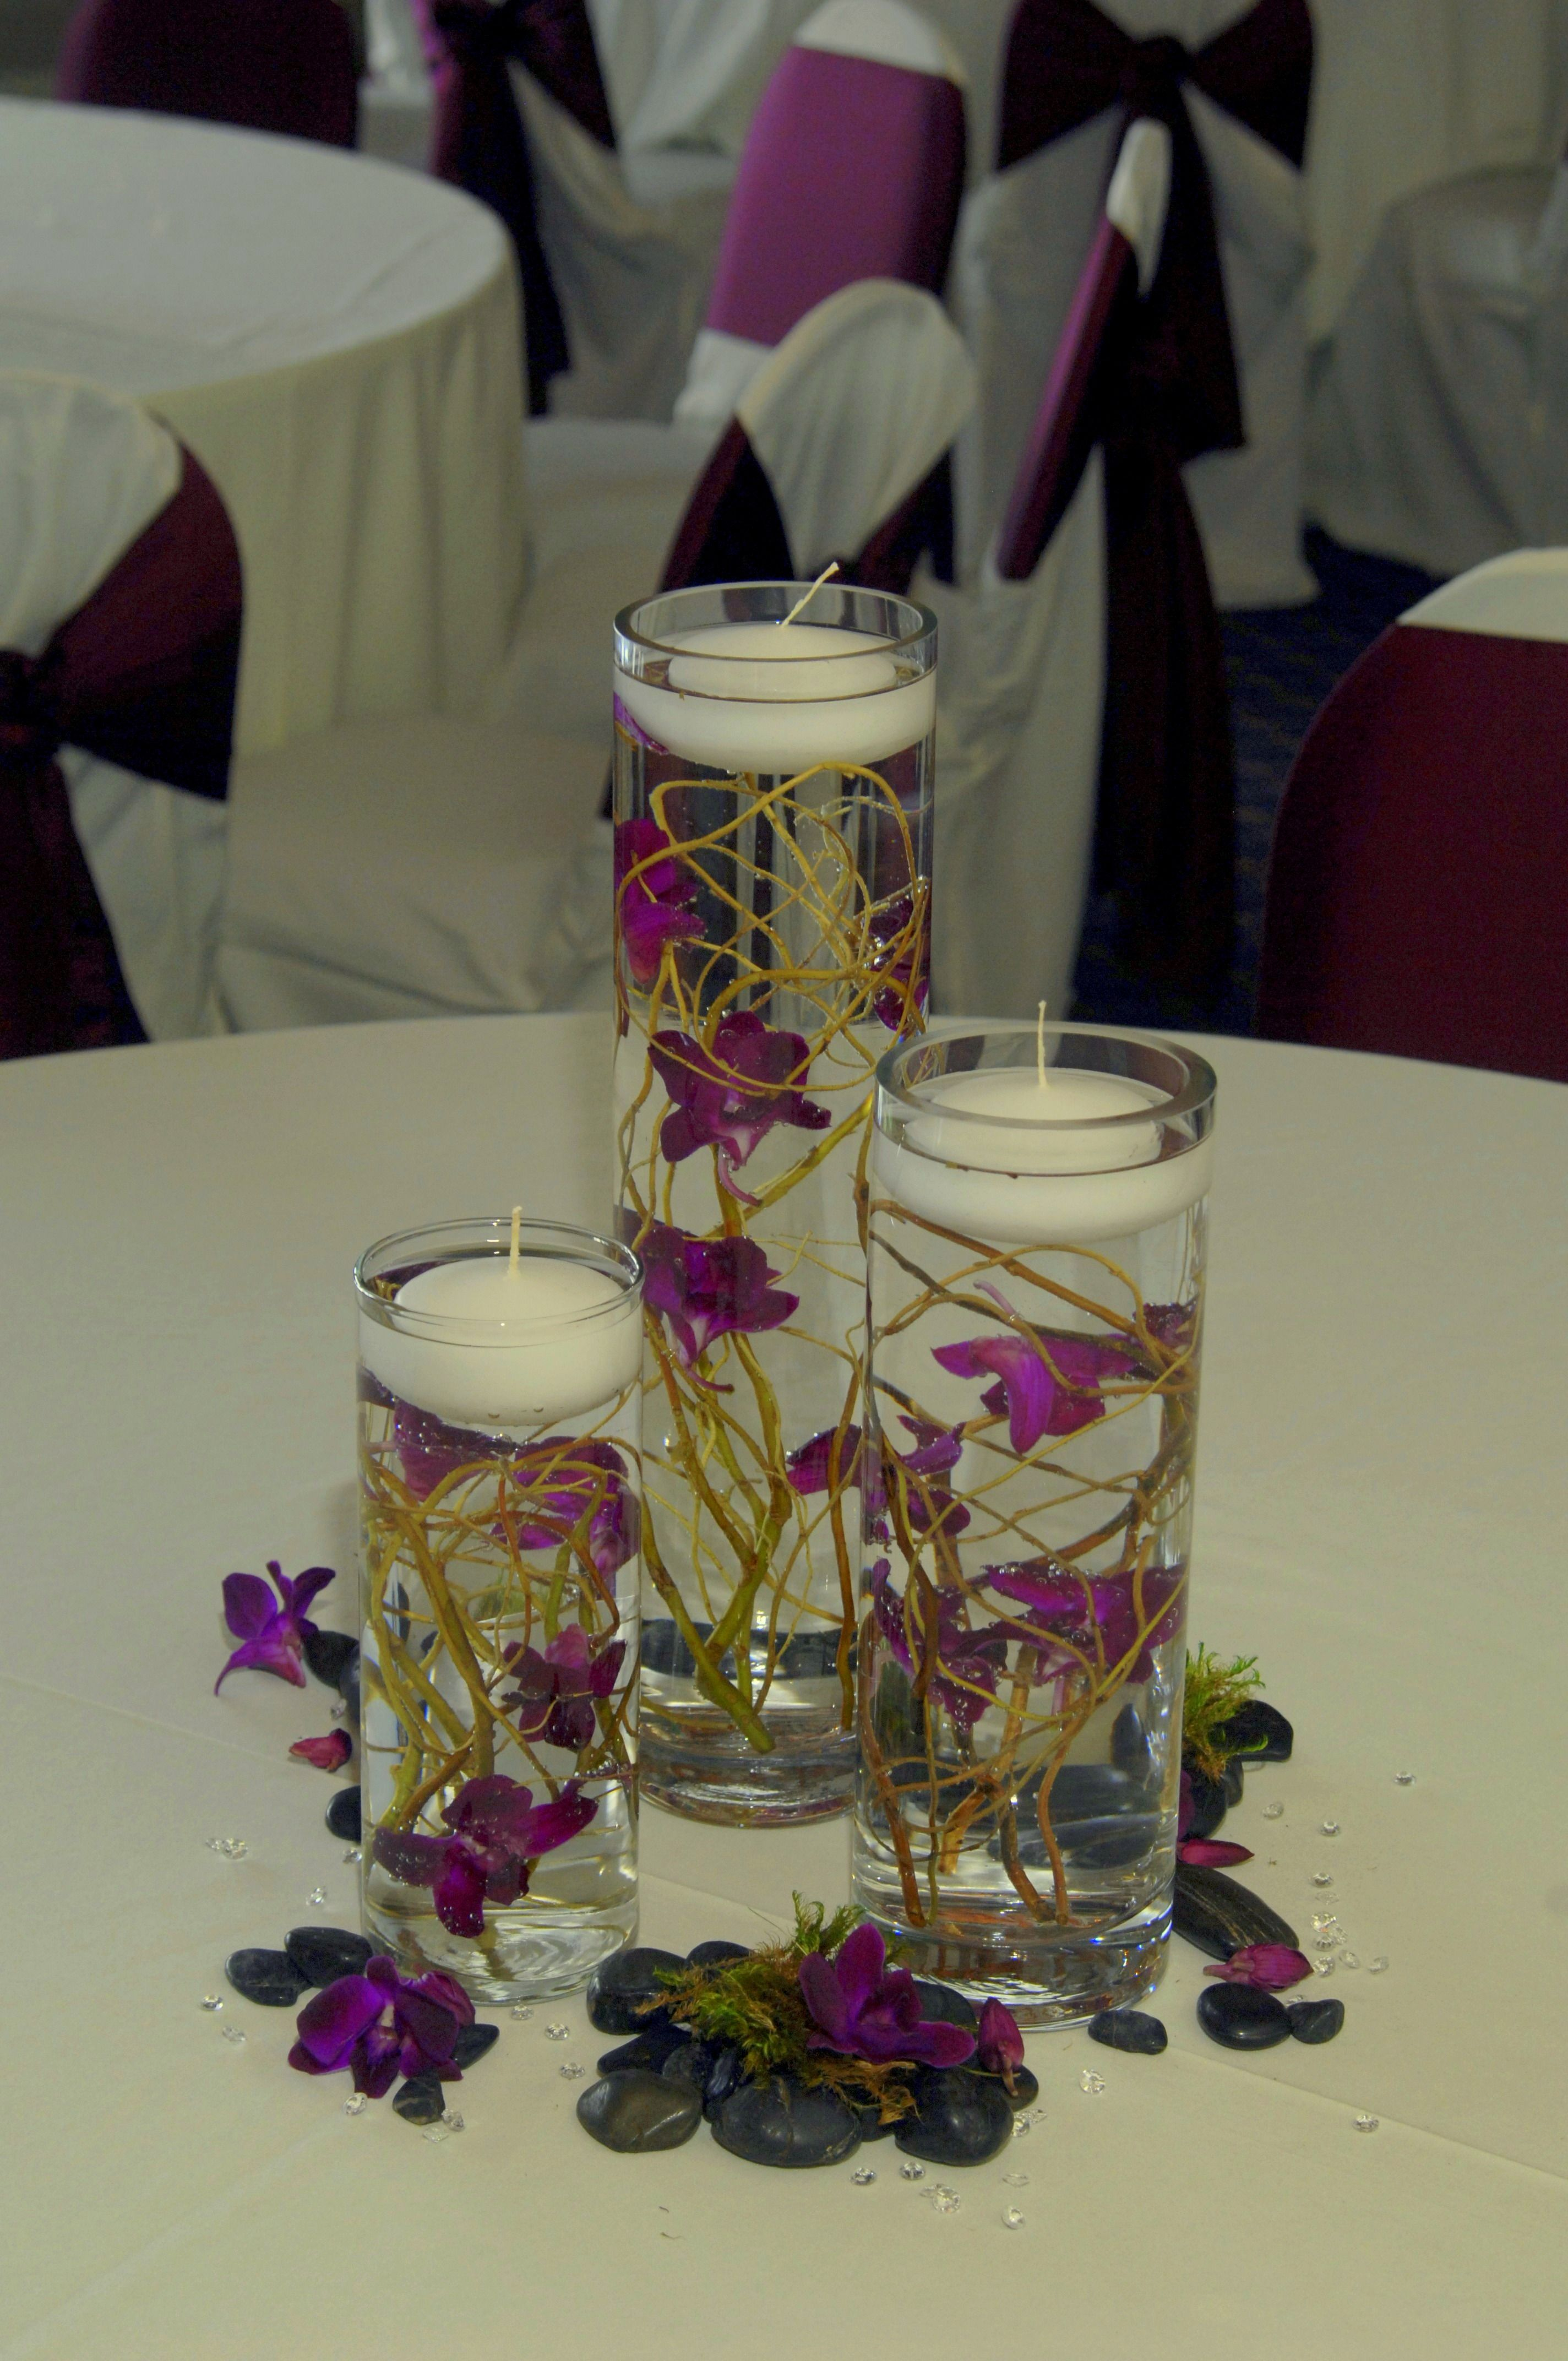 Forget me not floral design submerged orchid centerpiece